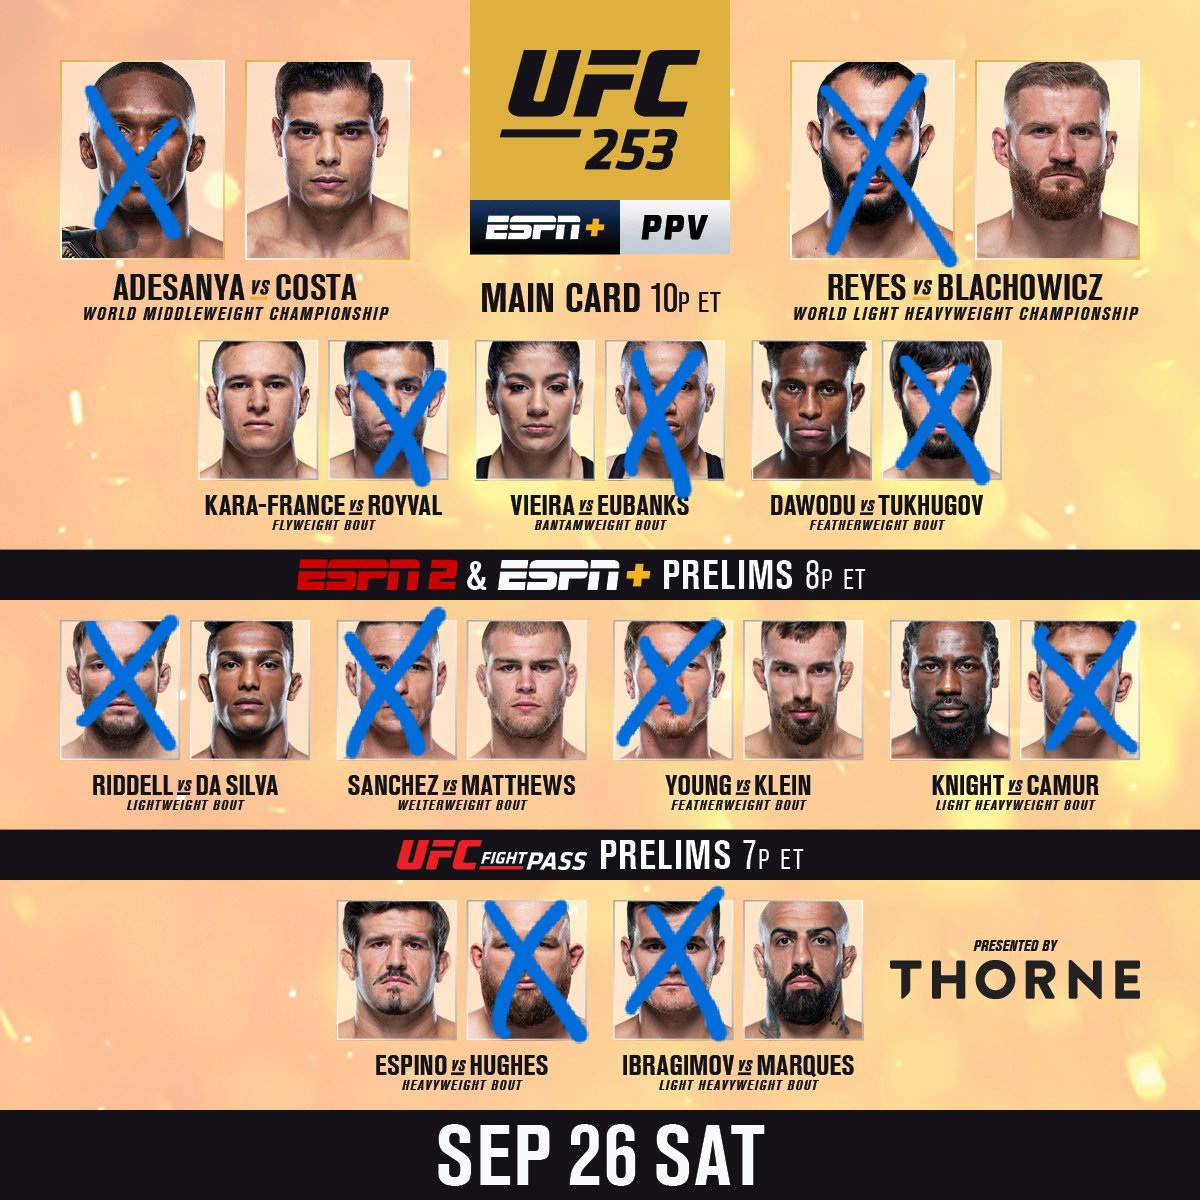 Here's our picks for tonight🔥 Scott's in blue, Marc's in red 👊🏼 who you got?🤷🏻♂️  https://t.co/s7QTBGNi7D  https://t.co/K9w7uTuGDp  https://t.co/Z9RxFWPozo  #MMATwitter #mma #UFC #UFCvegas #UFCVegas11 #UFC254 #ufc253 #PodernFamily #podcast #podcasting #UFCFightNight https://t.co/Q2Fo5LFoMb